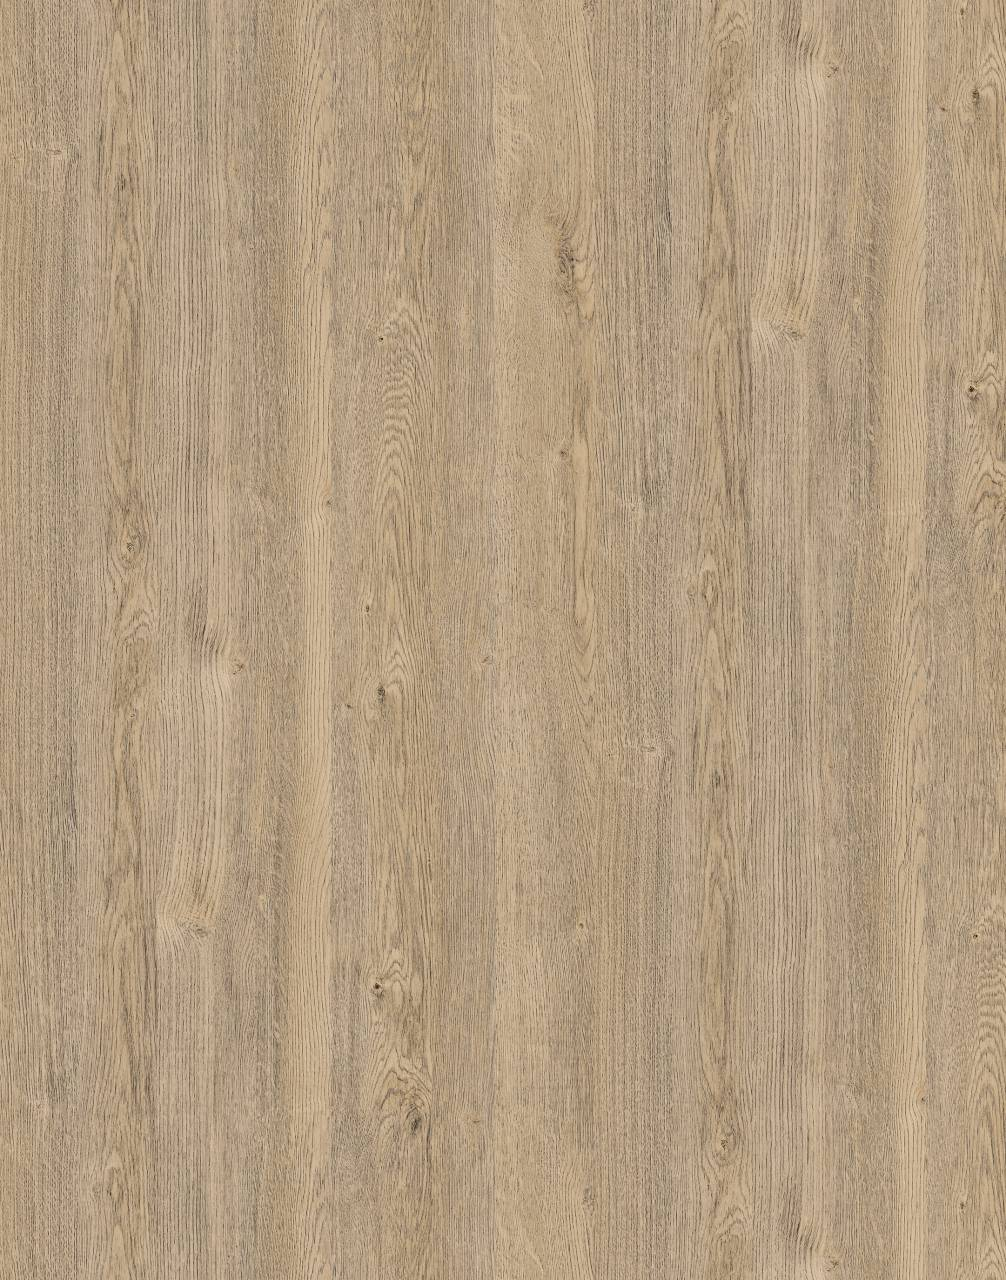 K076 Sand Expressive Oak (MF PB sample)